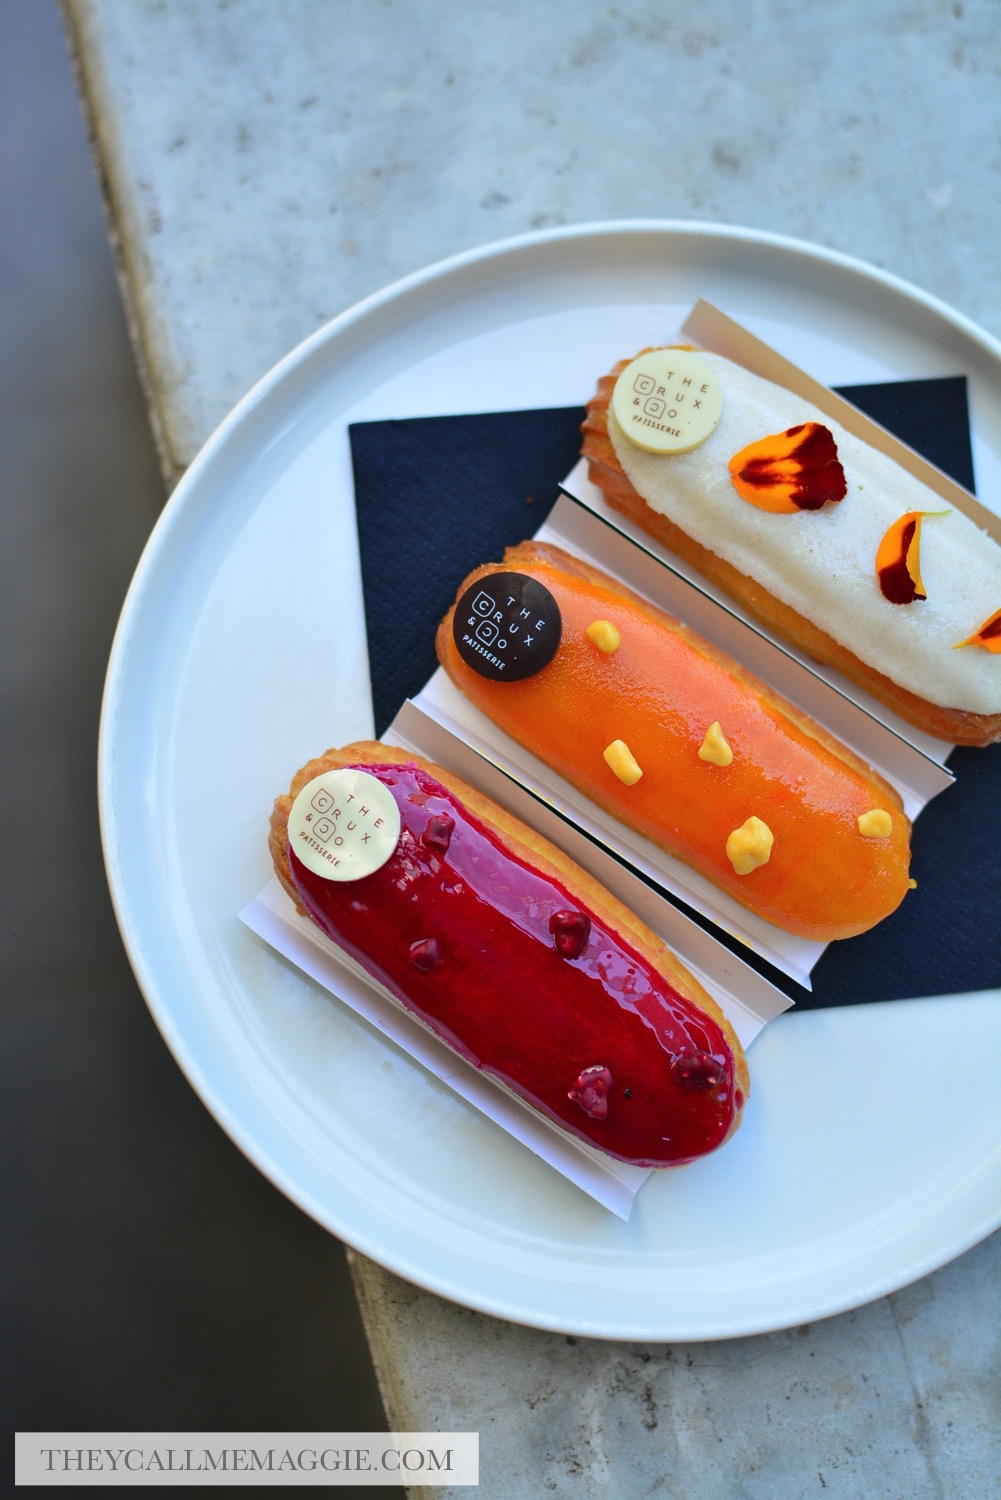 crux-and-co-eclairs.jpg